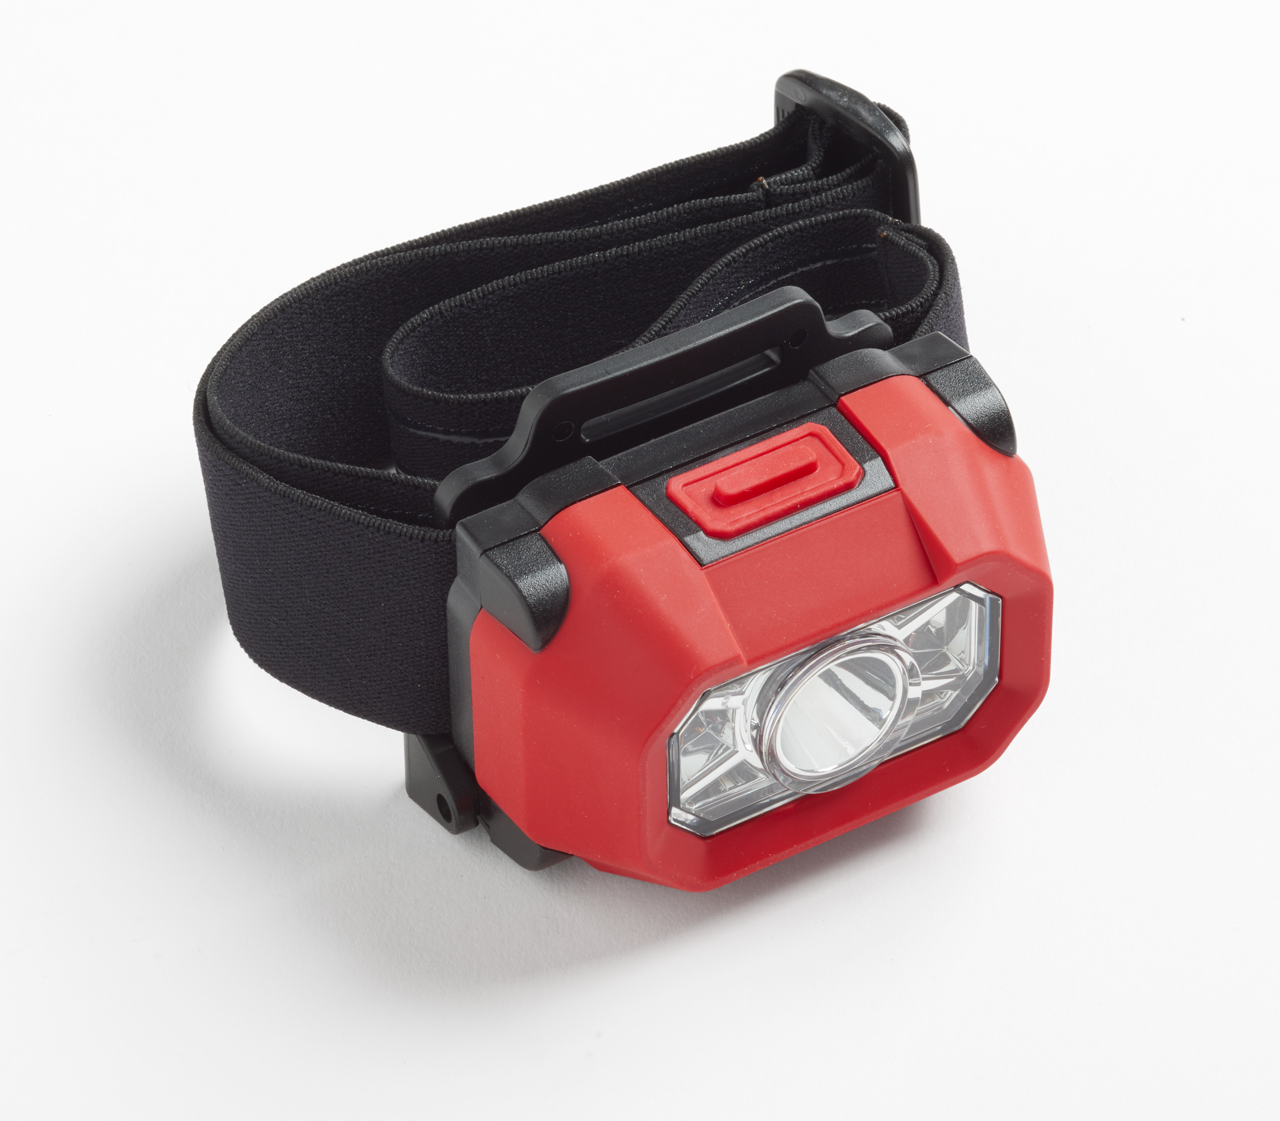 FLUKE HL-200 EX - 200 lumen intrinsically safe headlamp